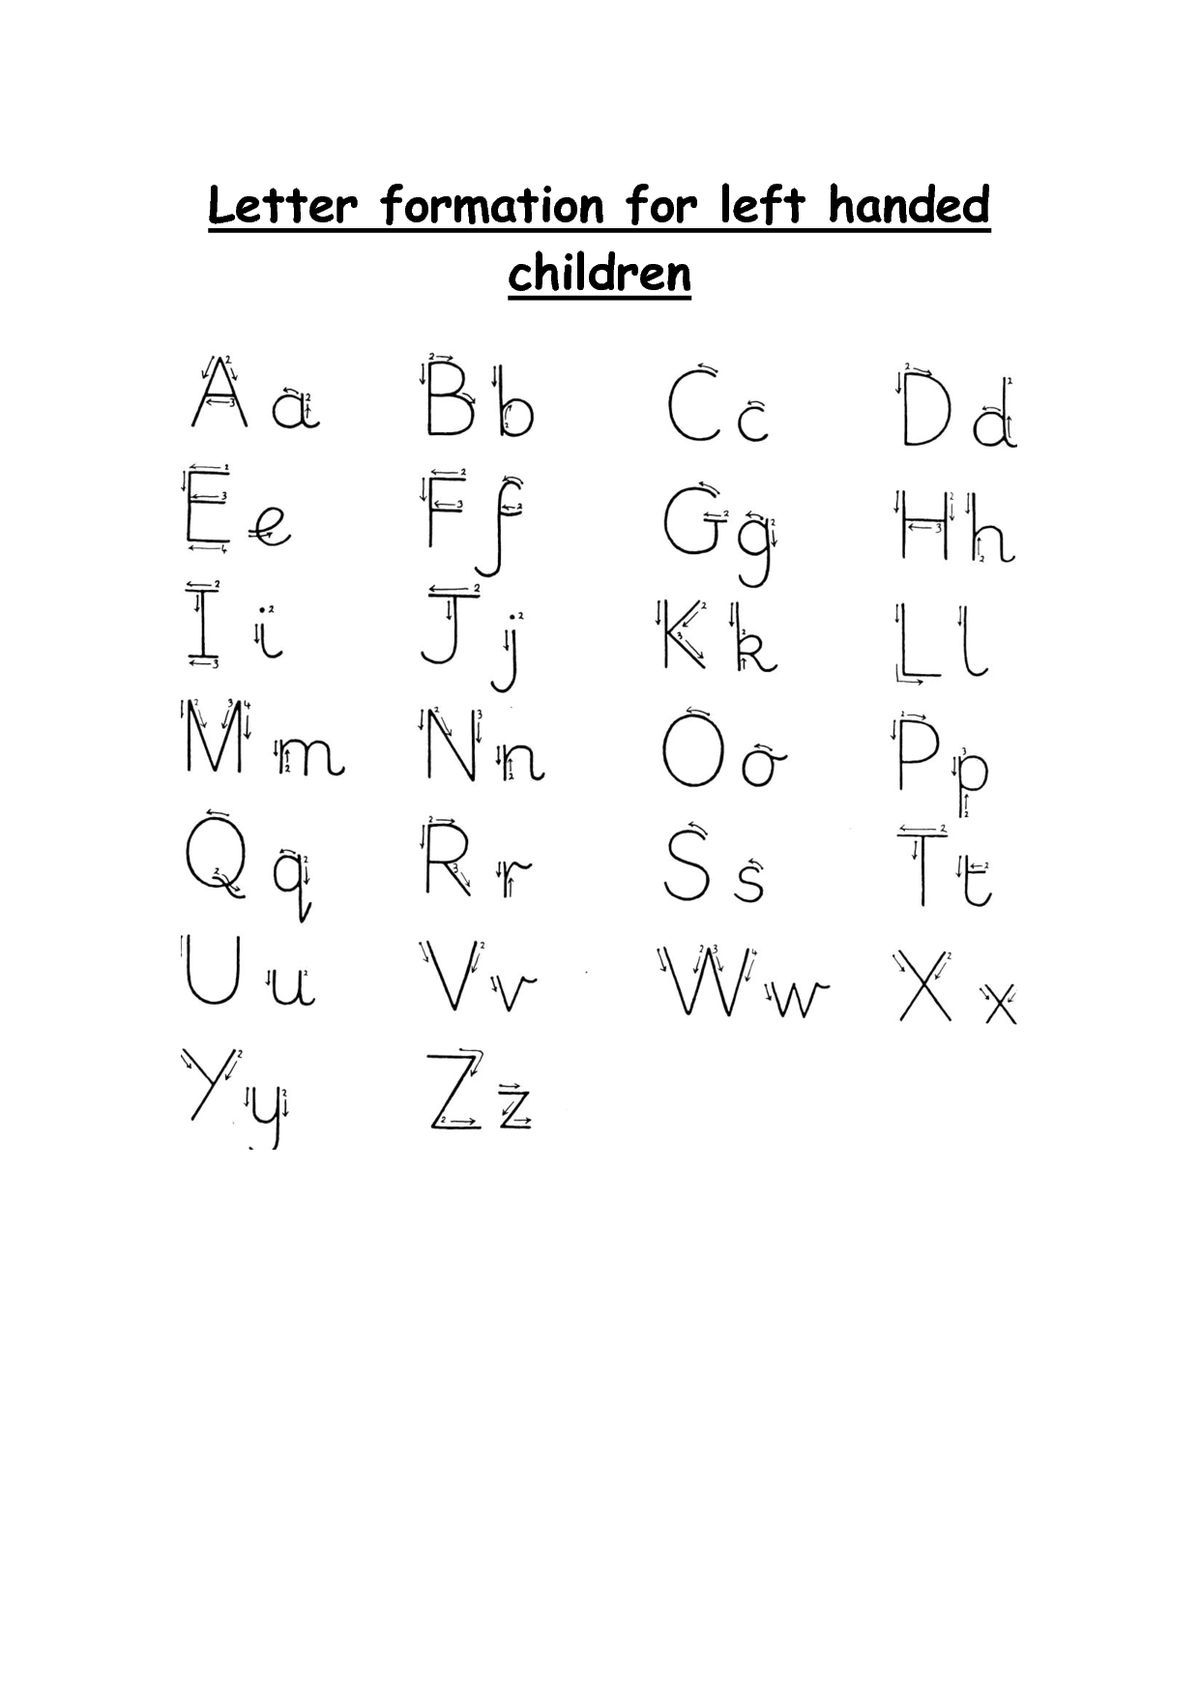 Left Handed Letter Formation With Images